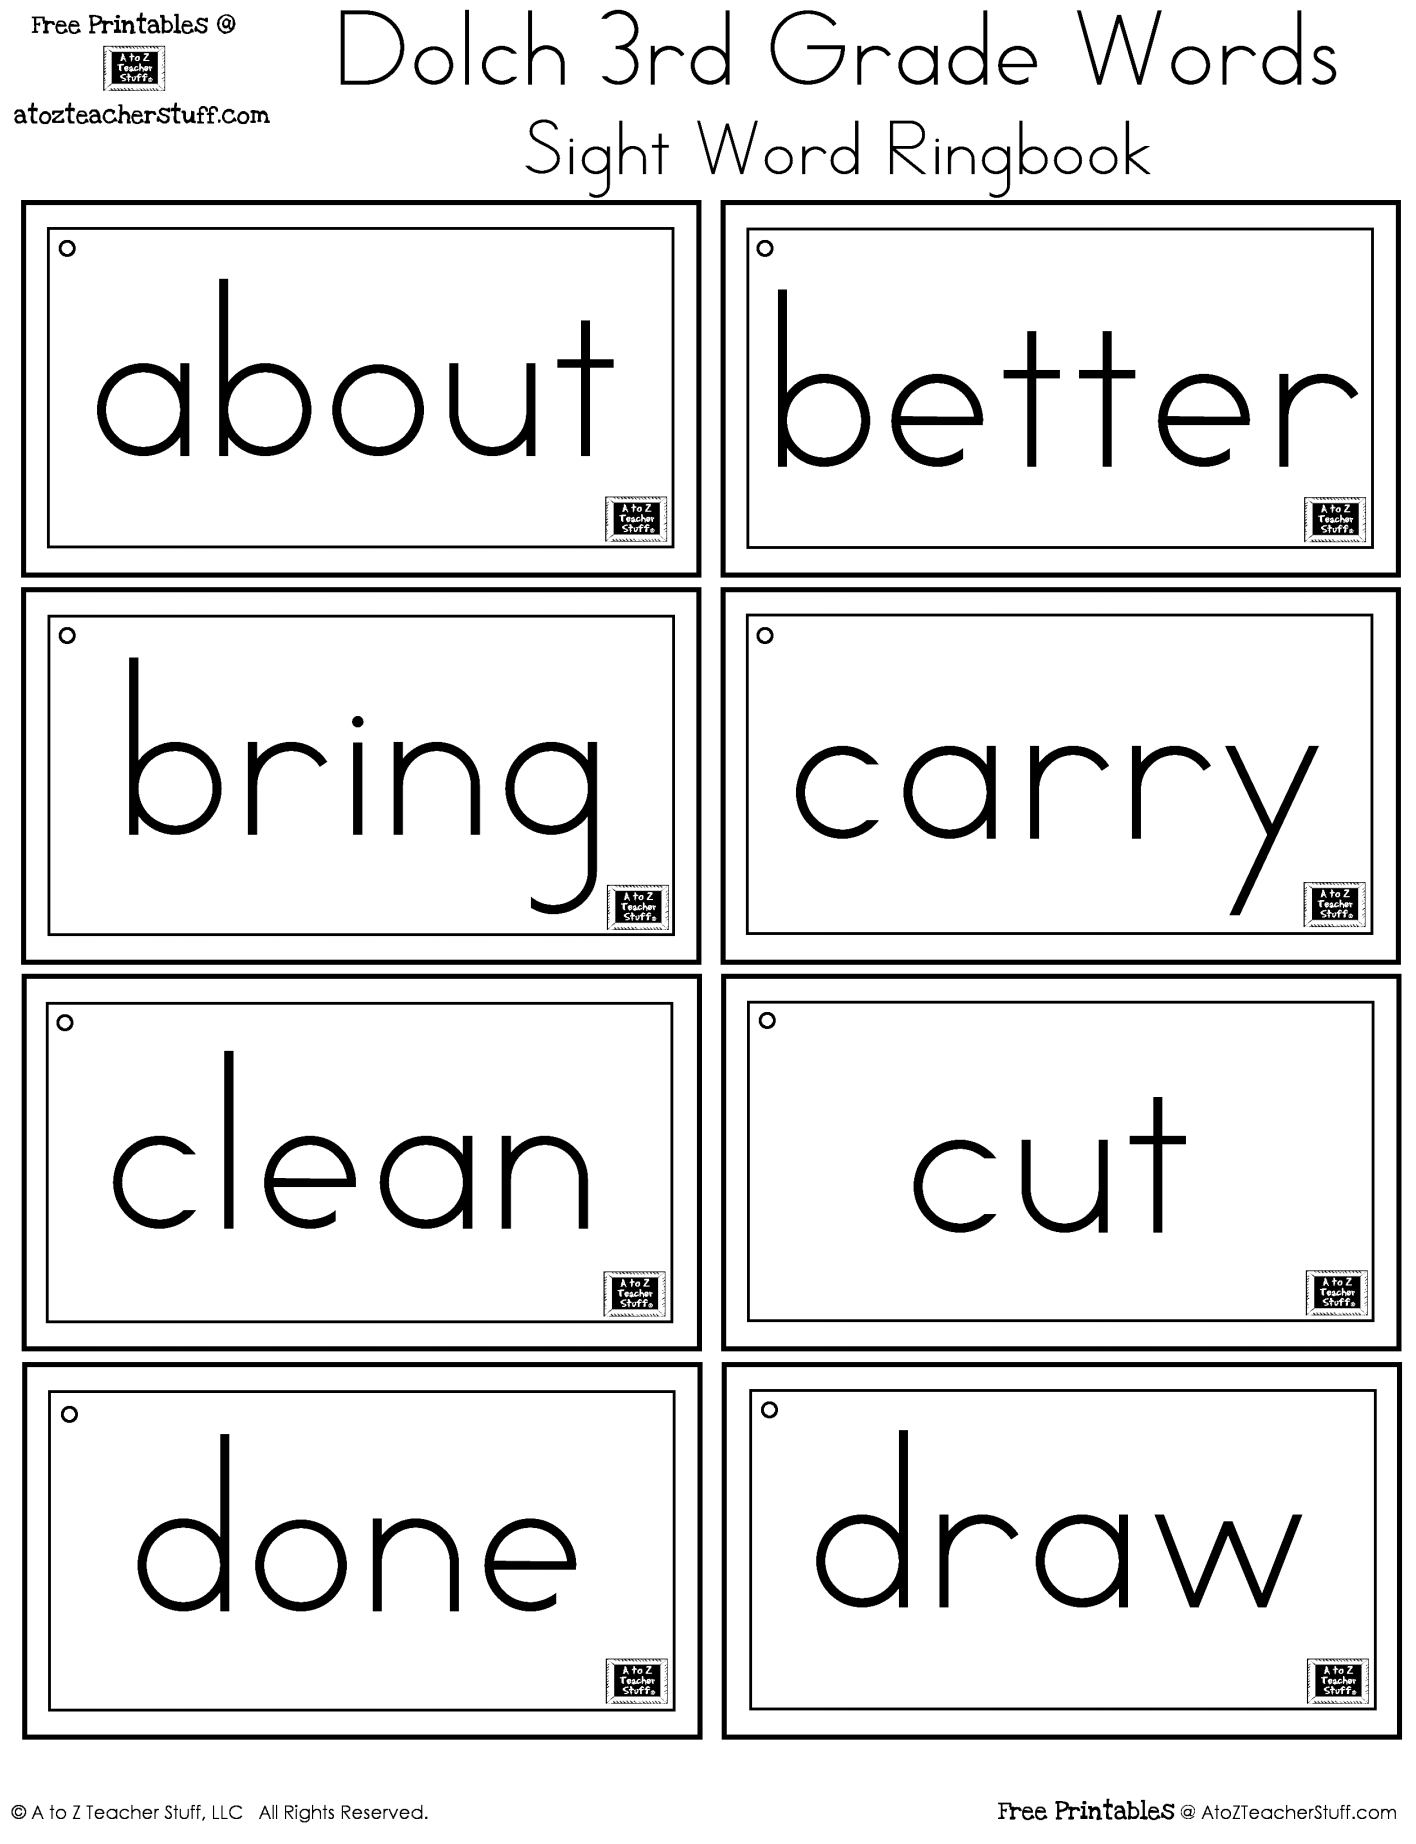 hight resolution of 3rd Grade Dolch Words Sight Word Ringbook   First grade sight words